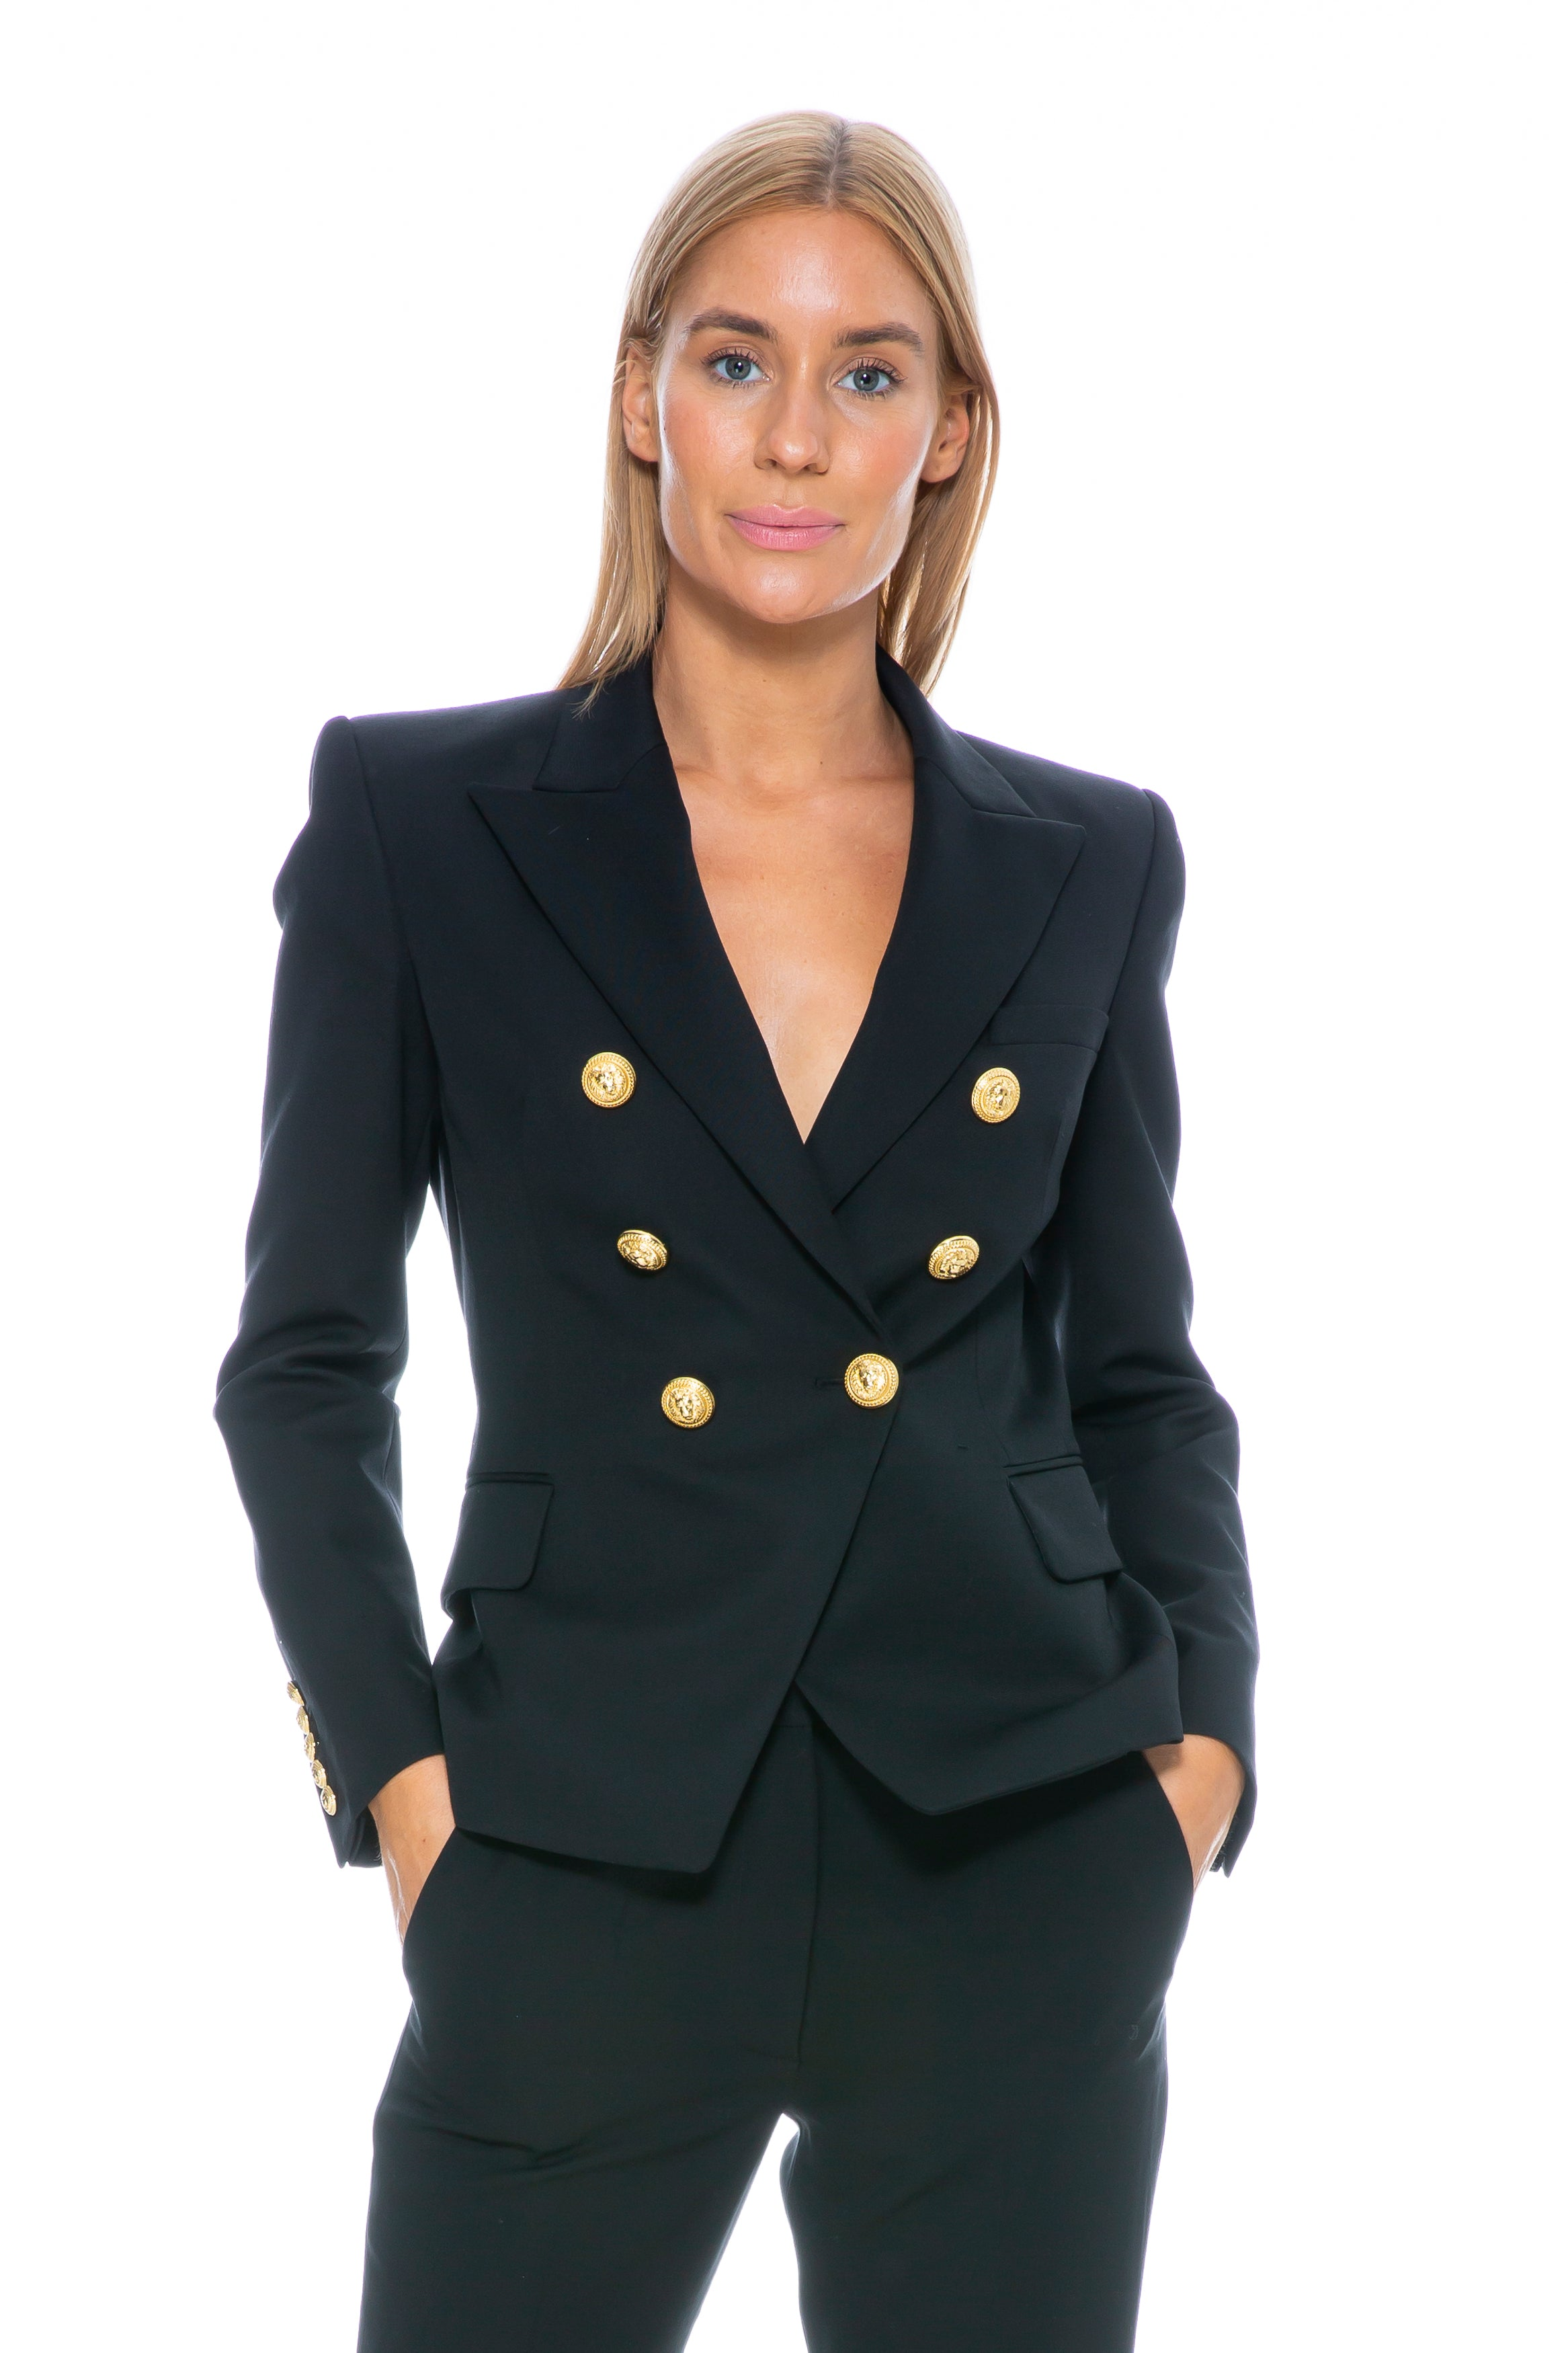 CLASSIC BLAZER BLACK WITH GOLD BUTTONS